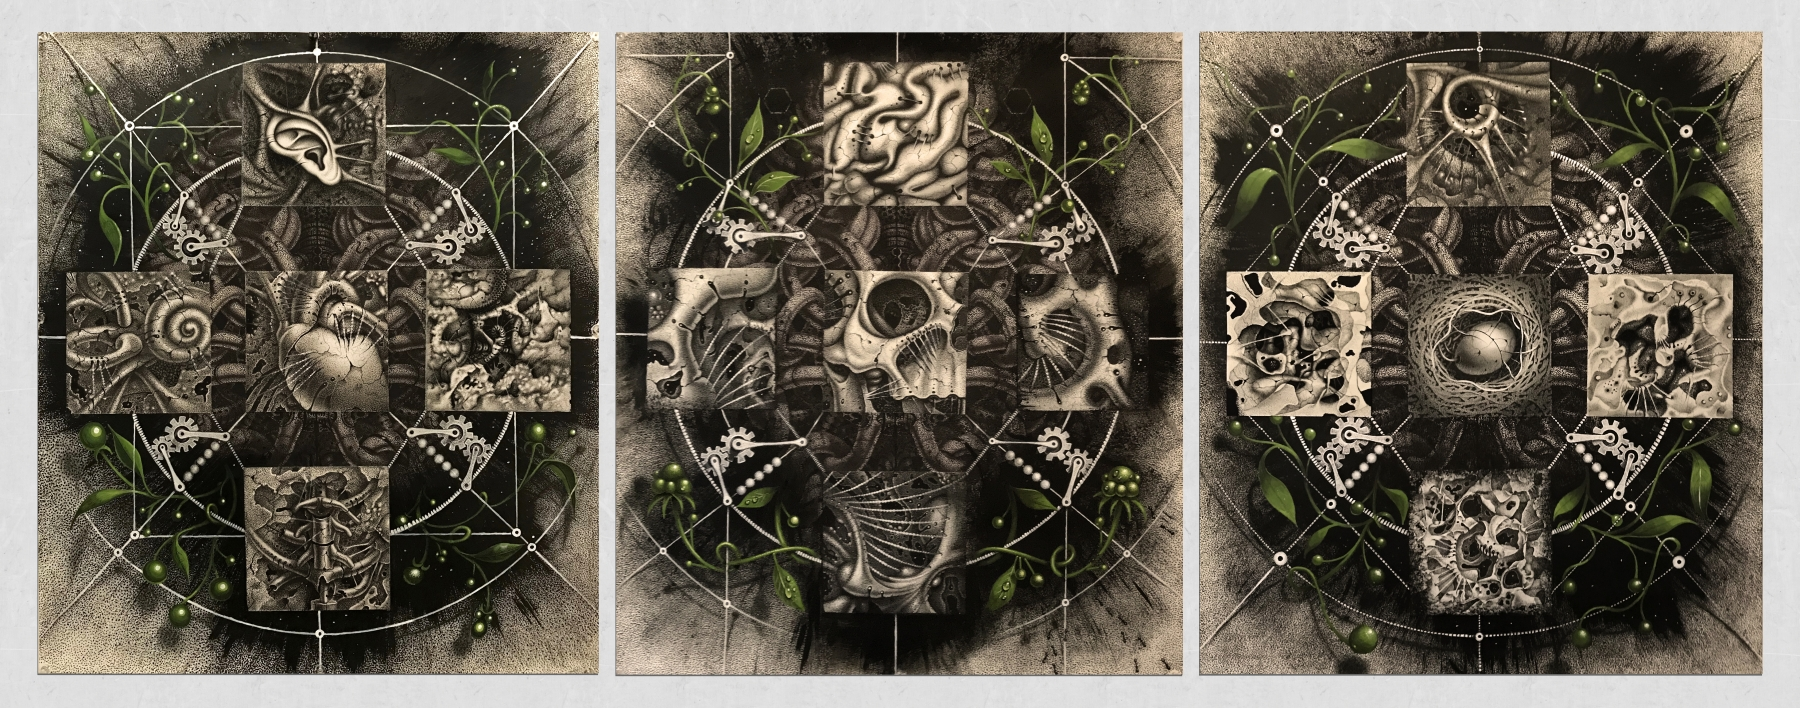 Samuel Gomez, Renascence (Tryptic), 2018, Graphite, ink and acrylic on paper.  29 x 66 inches, 29 x 22 inches (each panel)